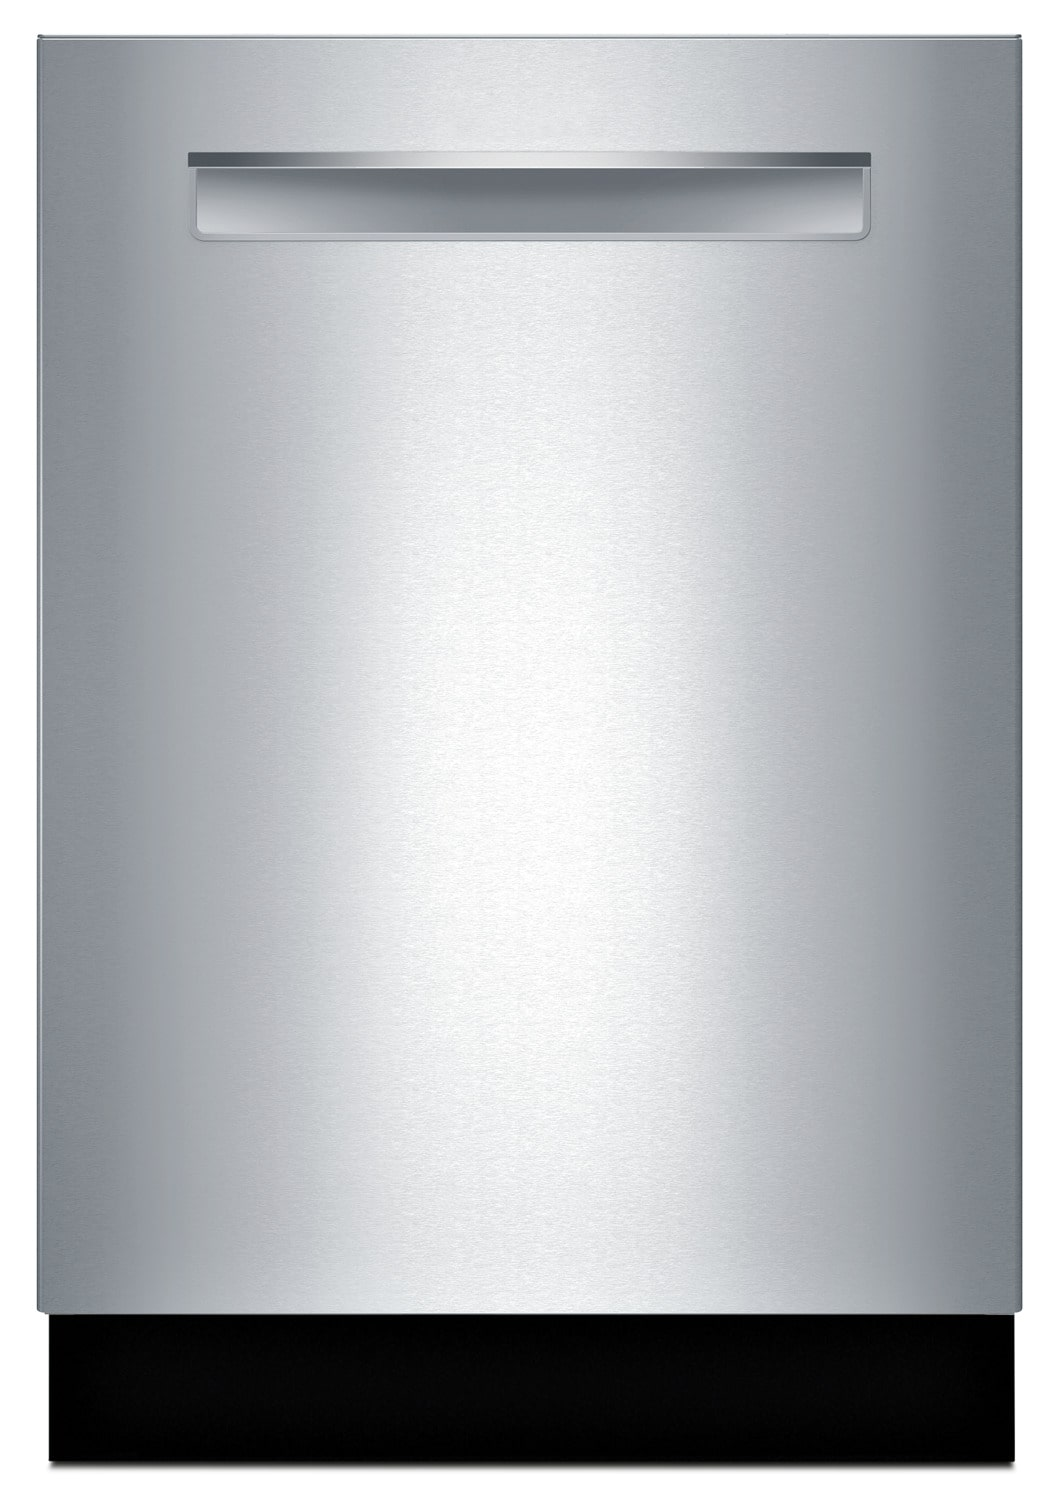 Bosch 500 Series Flush Handle Built-In Dishwasher – SHPM65W55N